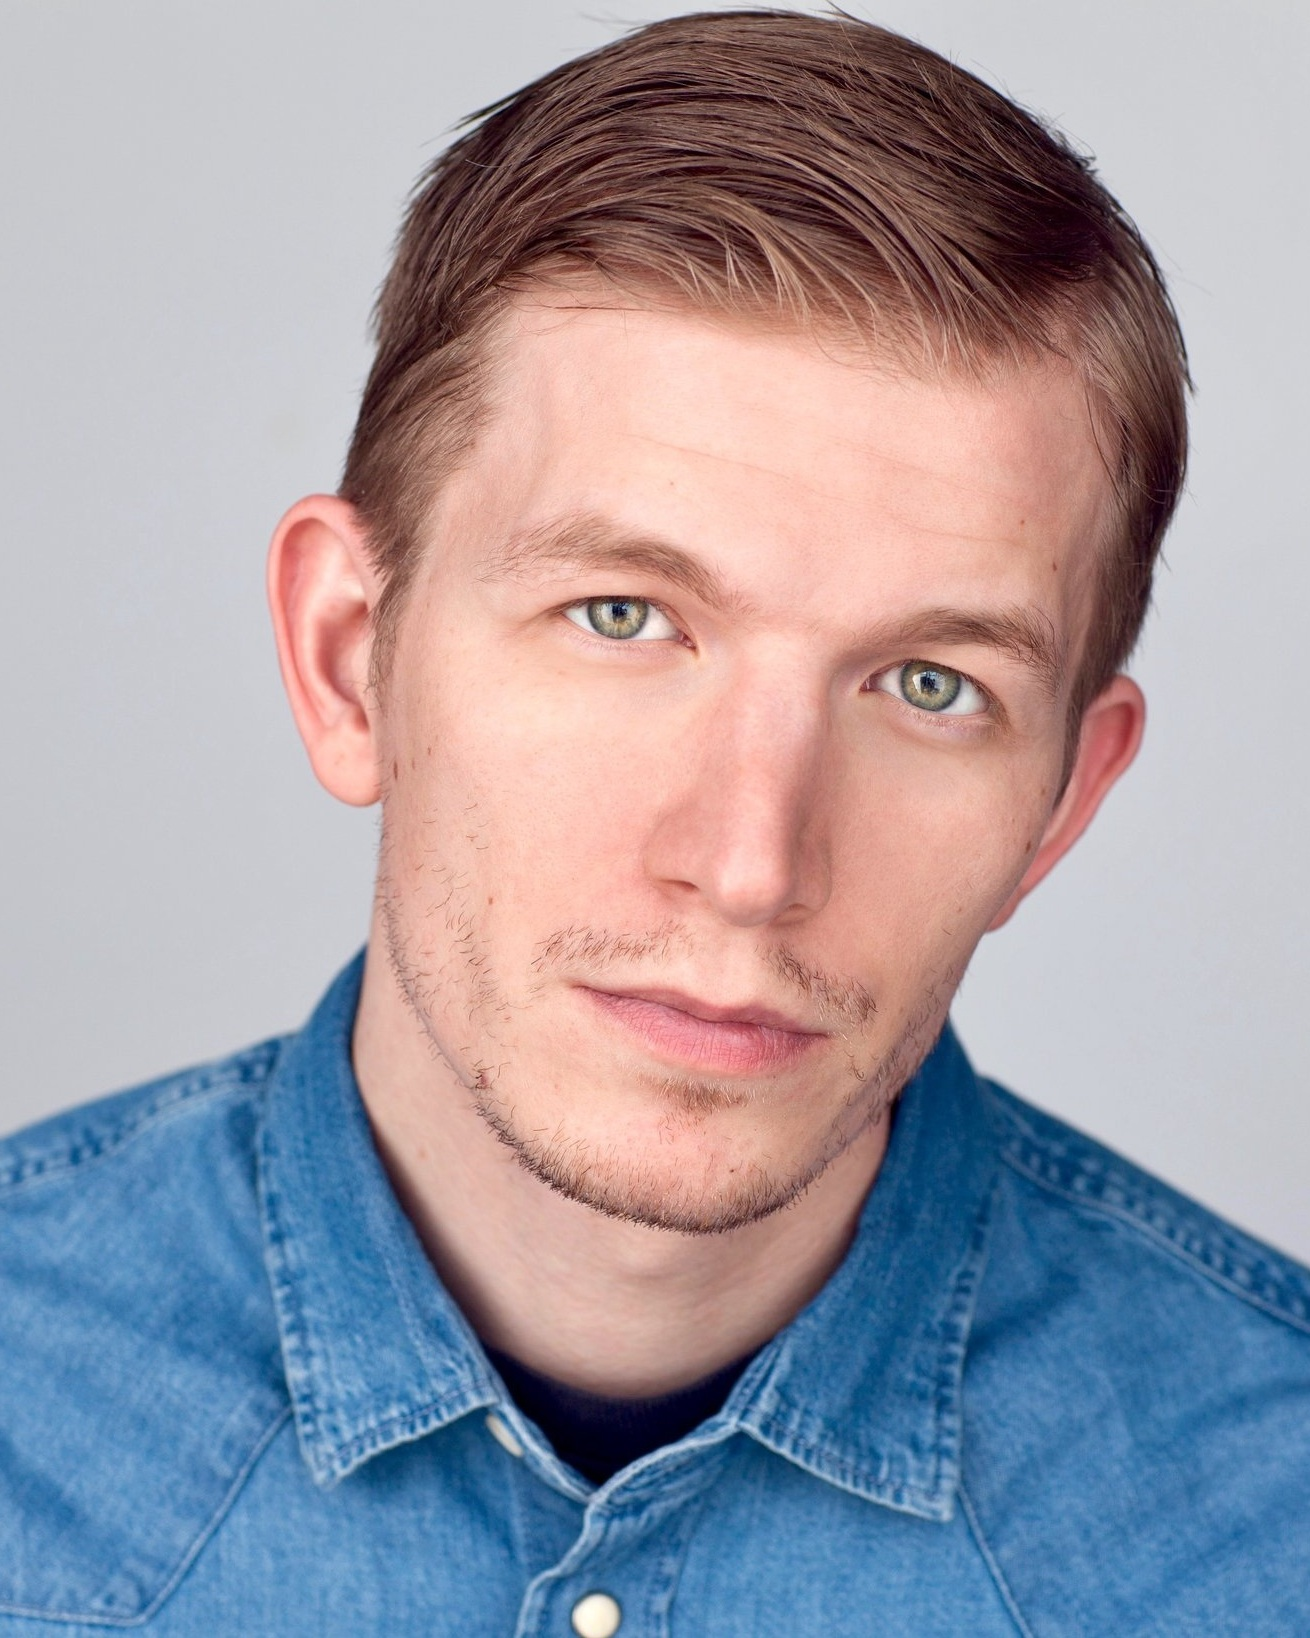 SPENSER GRANESE - So stoked for this dude! Safe travels to client Spenser Granese who flies to New Mexico today to begin shooting his recurring arc on the upcoming season of a certain hit AMC series…